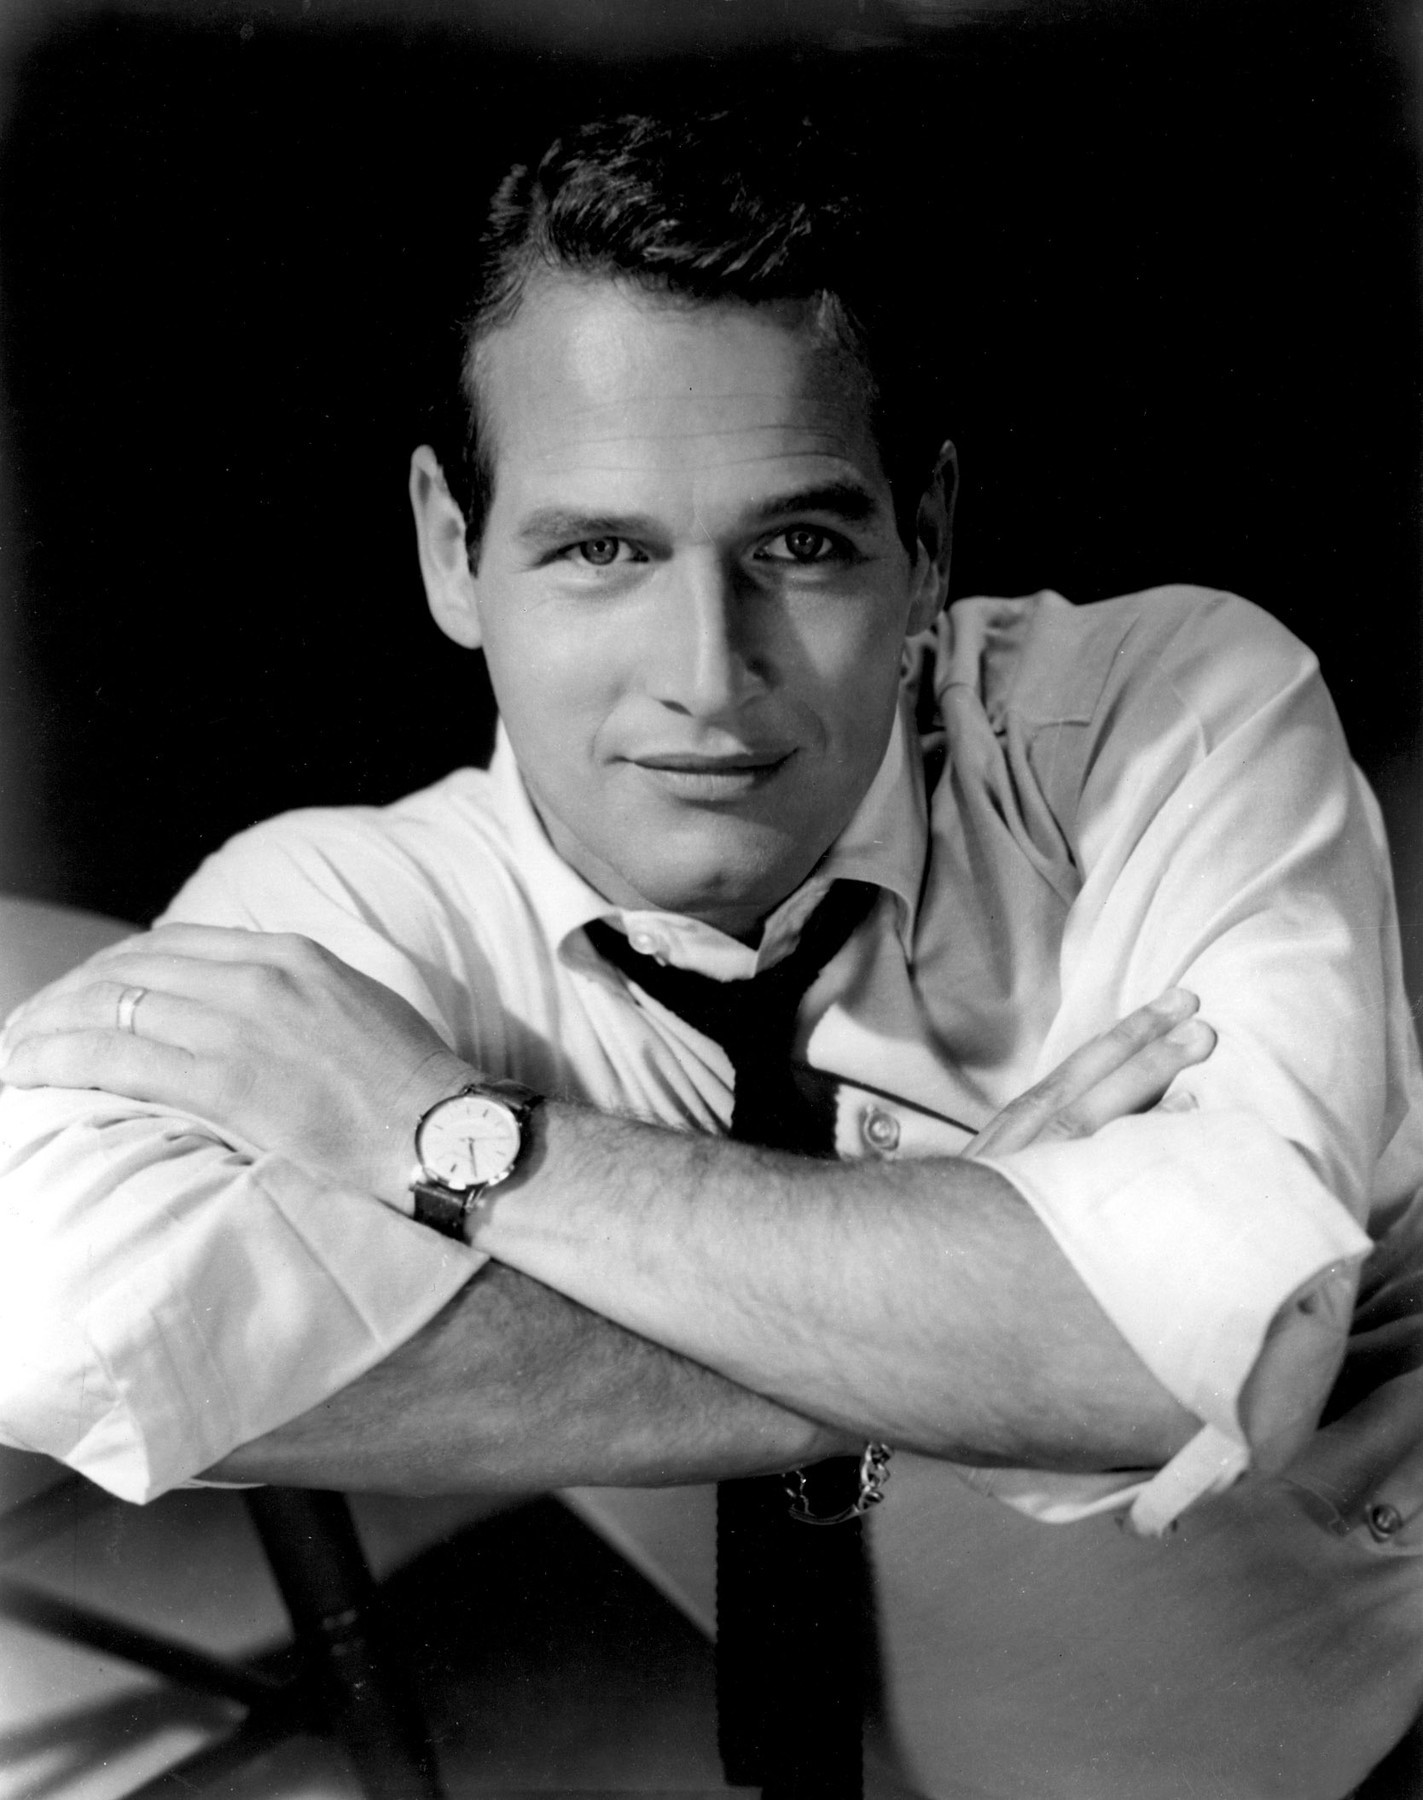 PAUL NEWMAN, Image: 148315936, License: Rights-managed, Restrictions: For usage credit please use; Courtesy Everett Collection, Model Release: no, Credit line: - / Everett / Profimedia